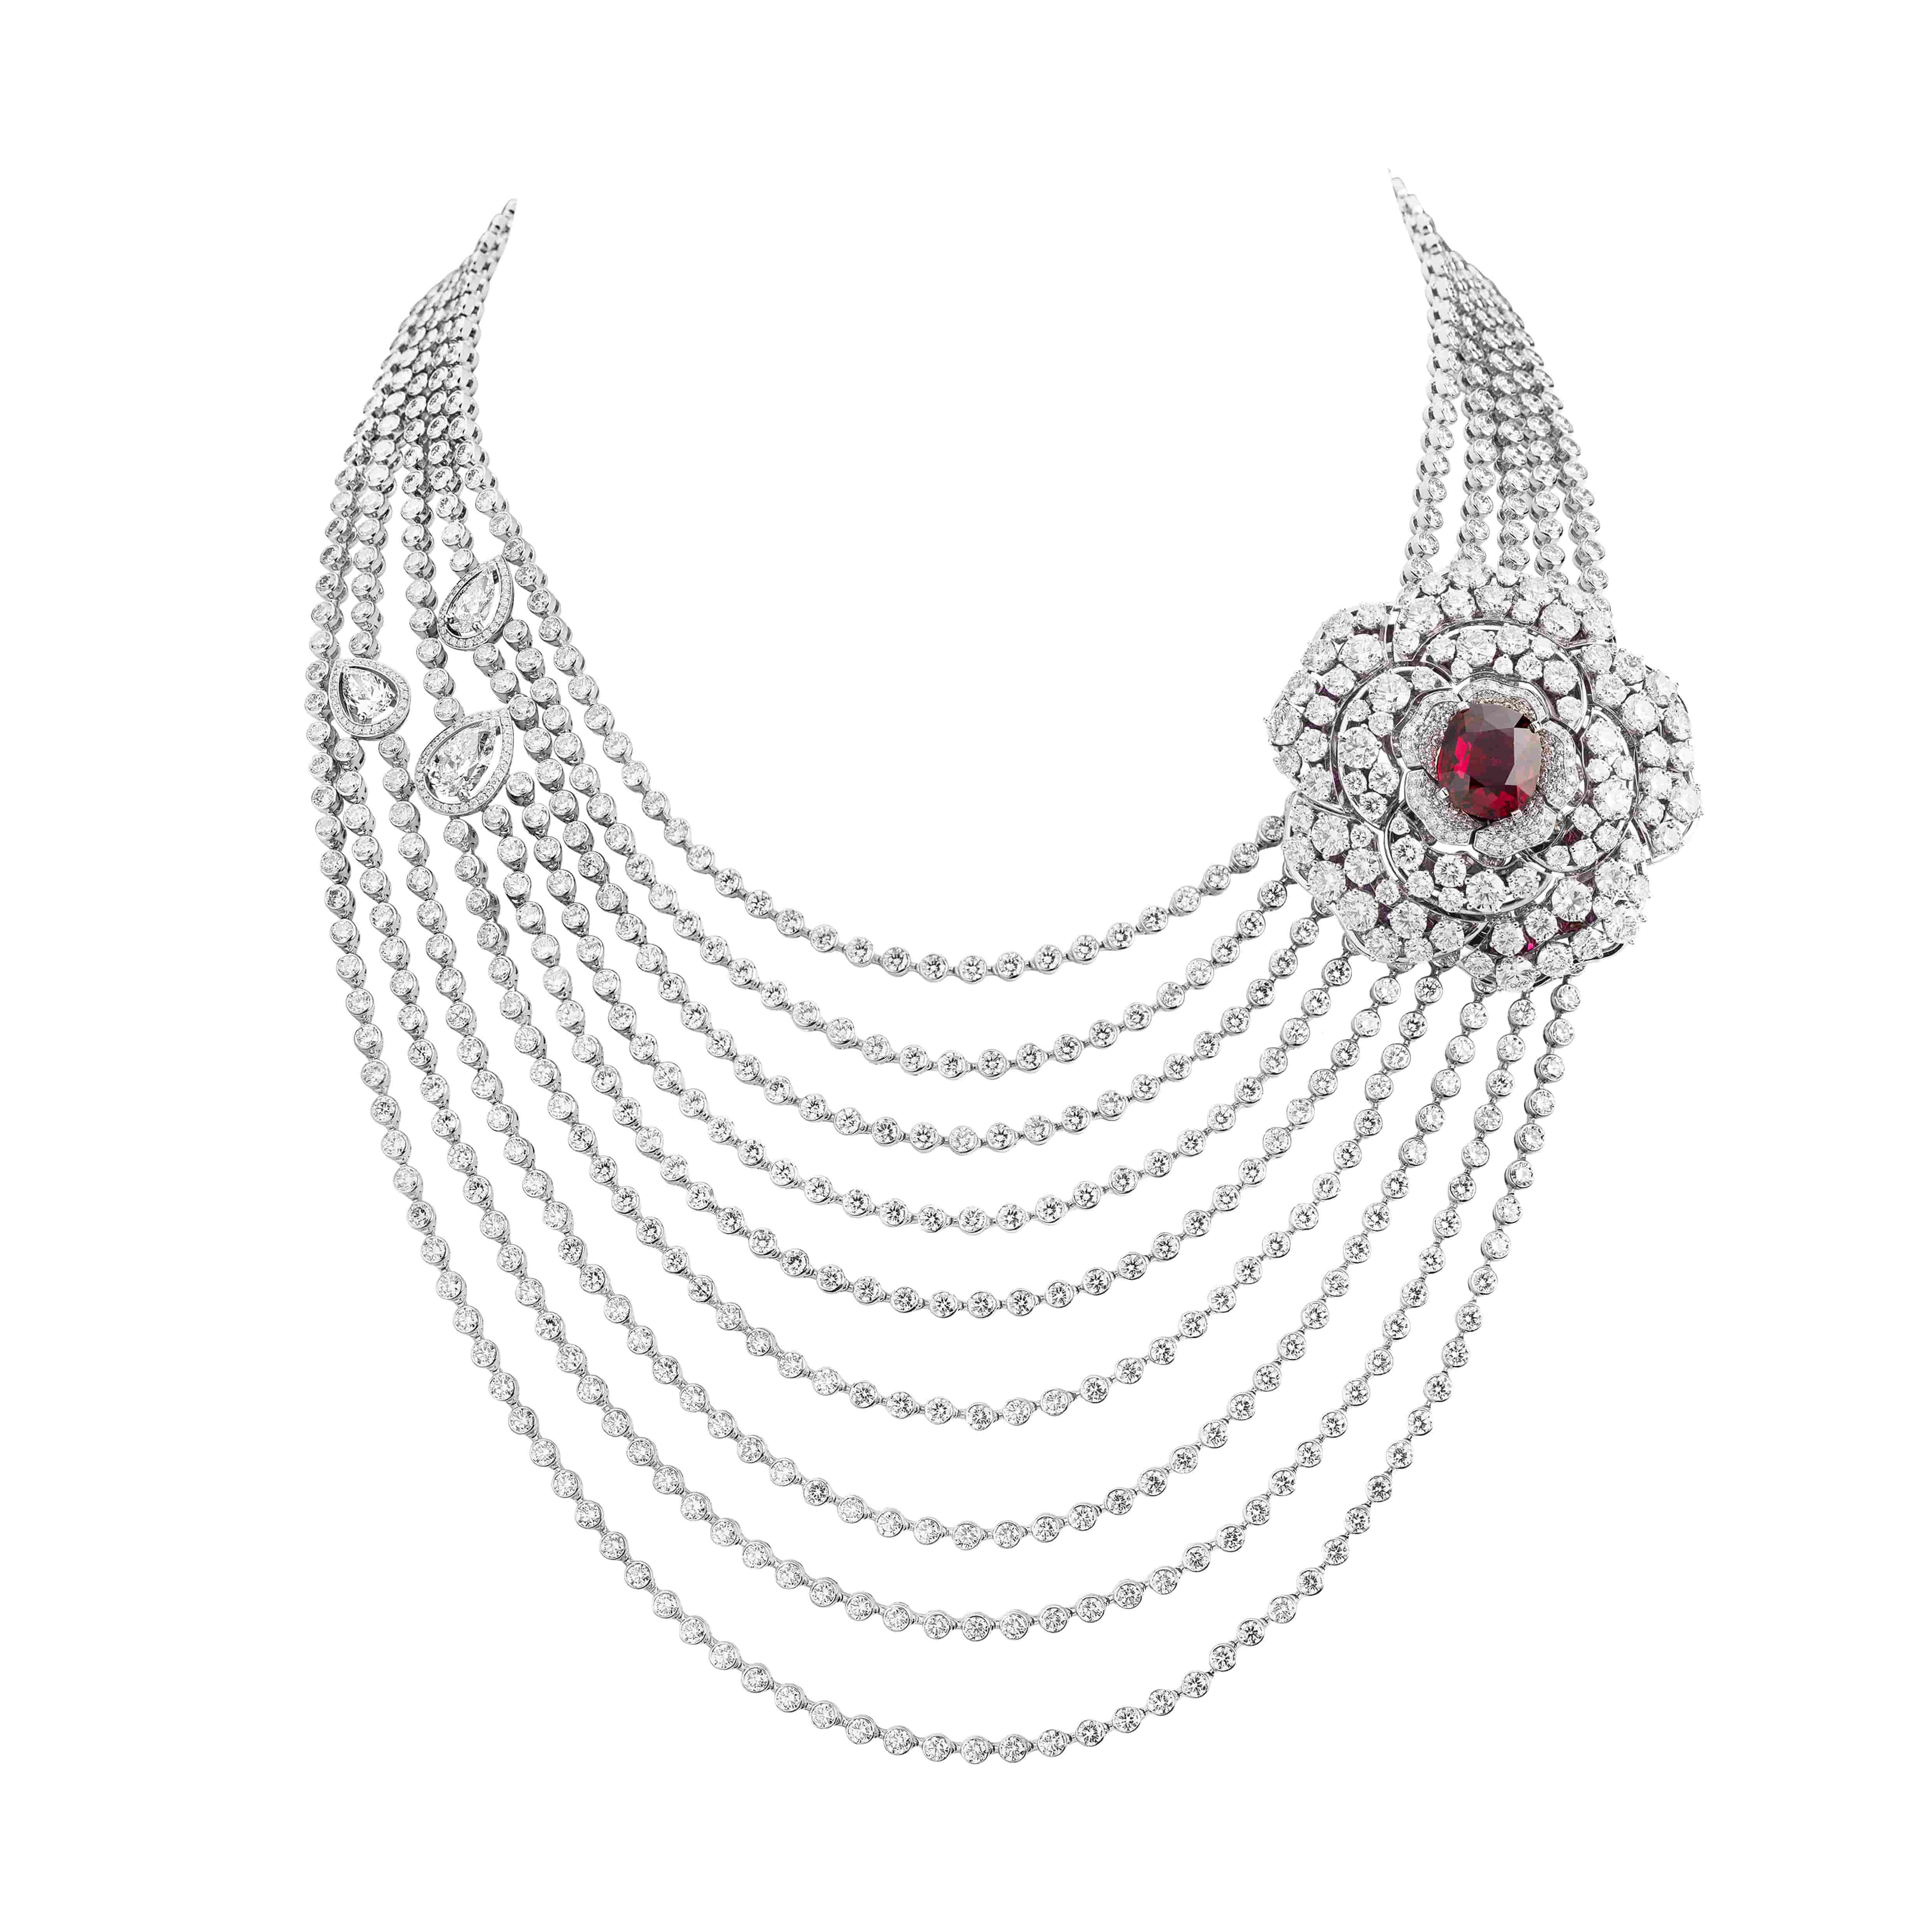 Rouge_Incandescent_necklace_J63491.jpg